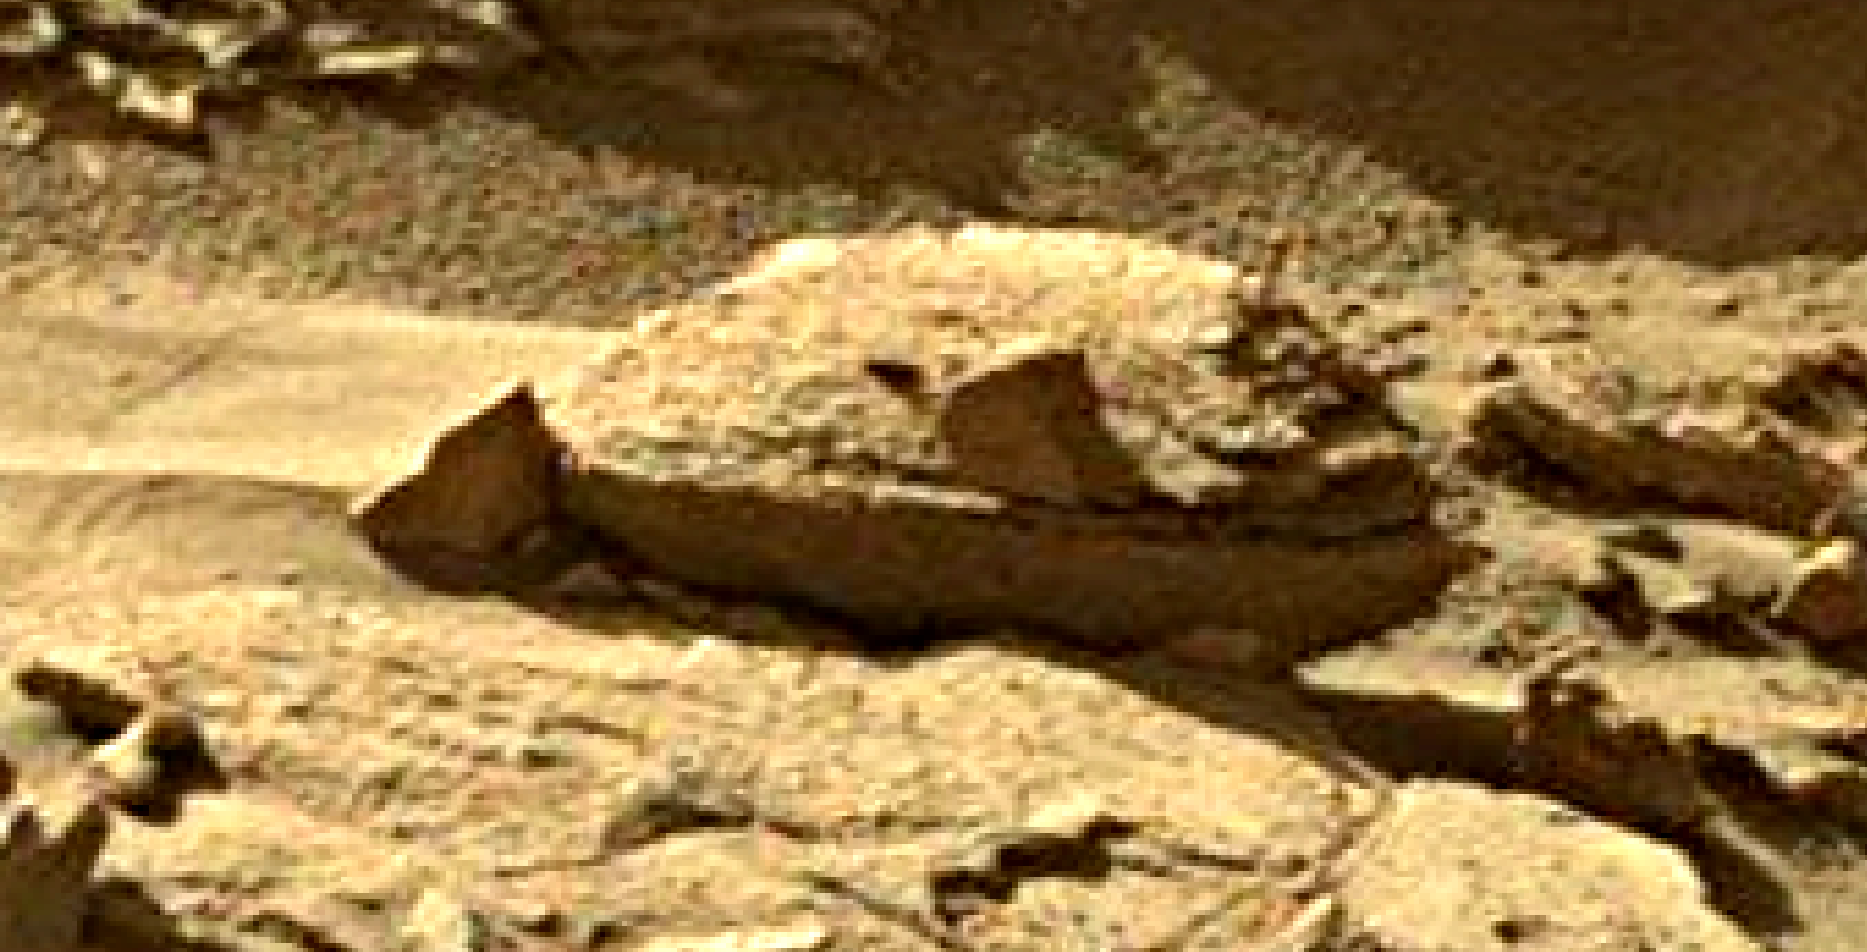 mars sol 1302 anomaly-artifacts 4 was life on mars